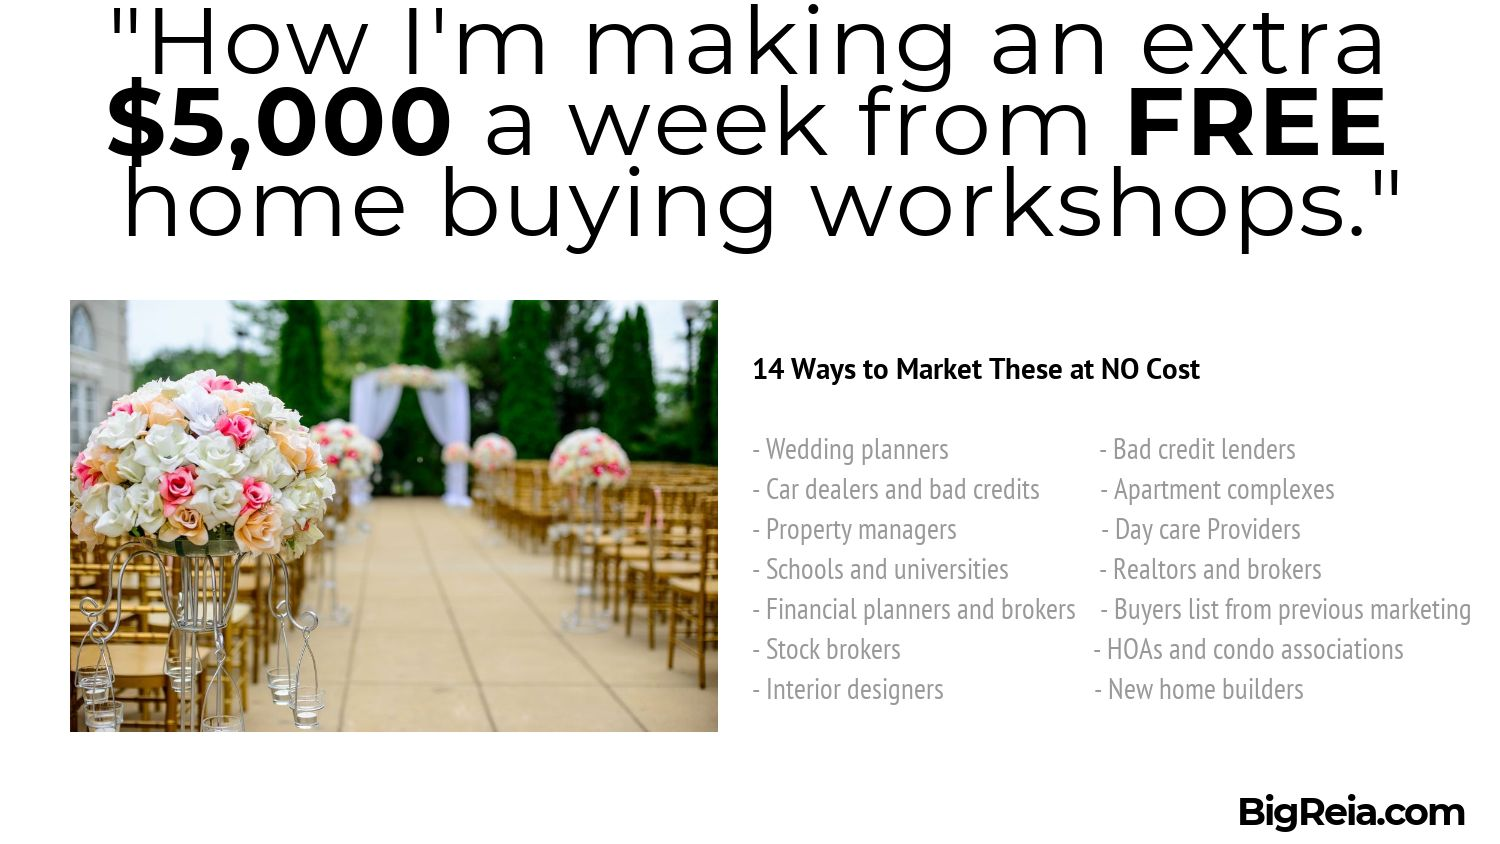 14 ways to promote free home buyer workshops